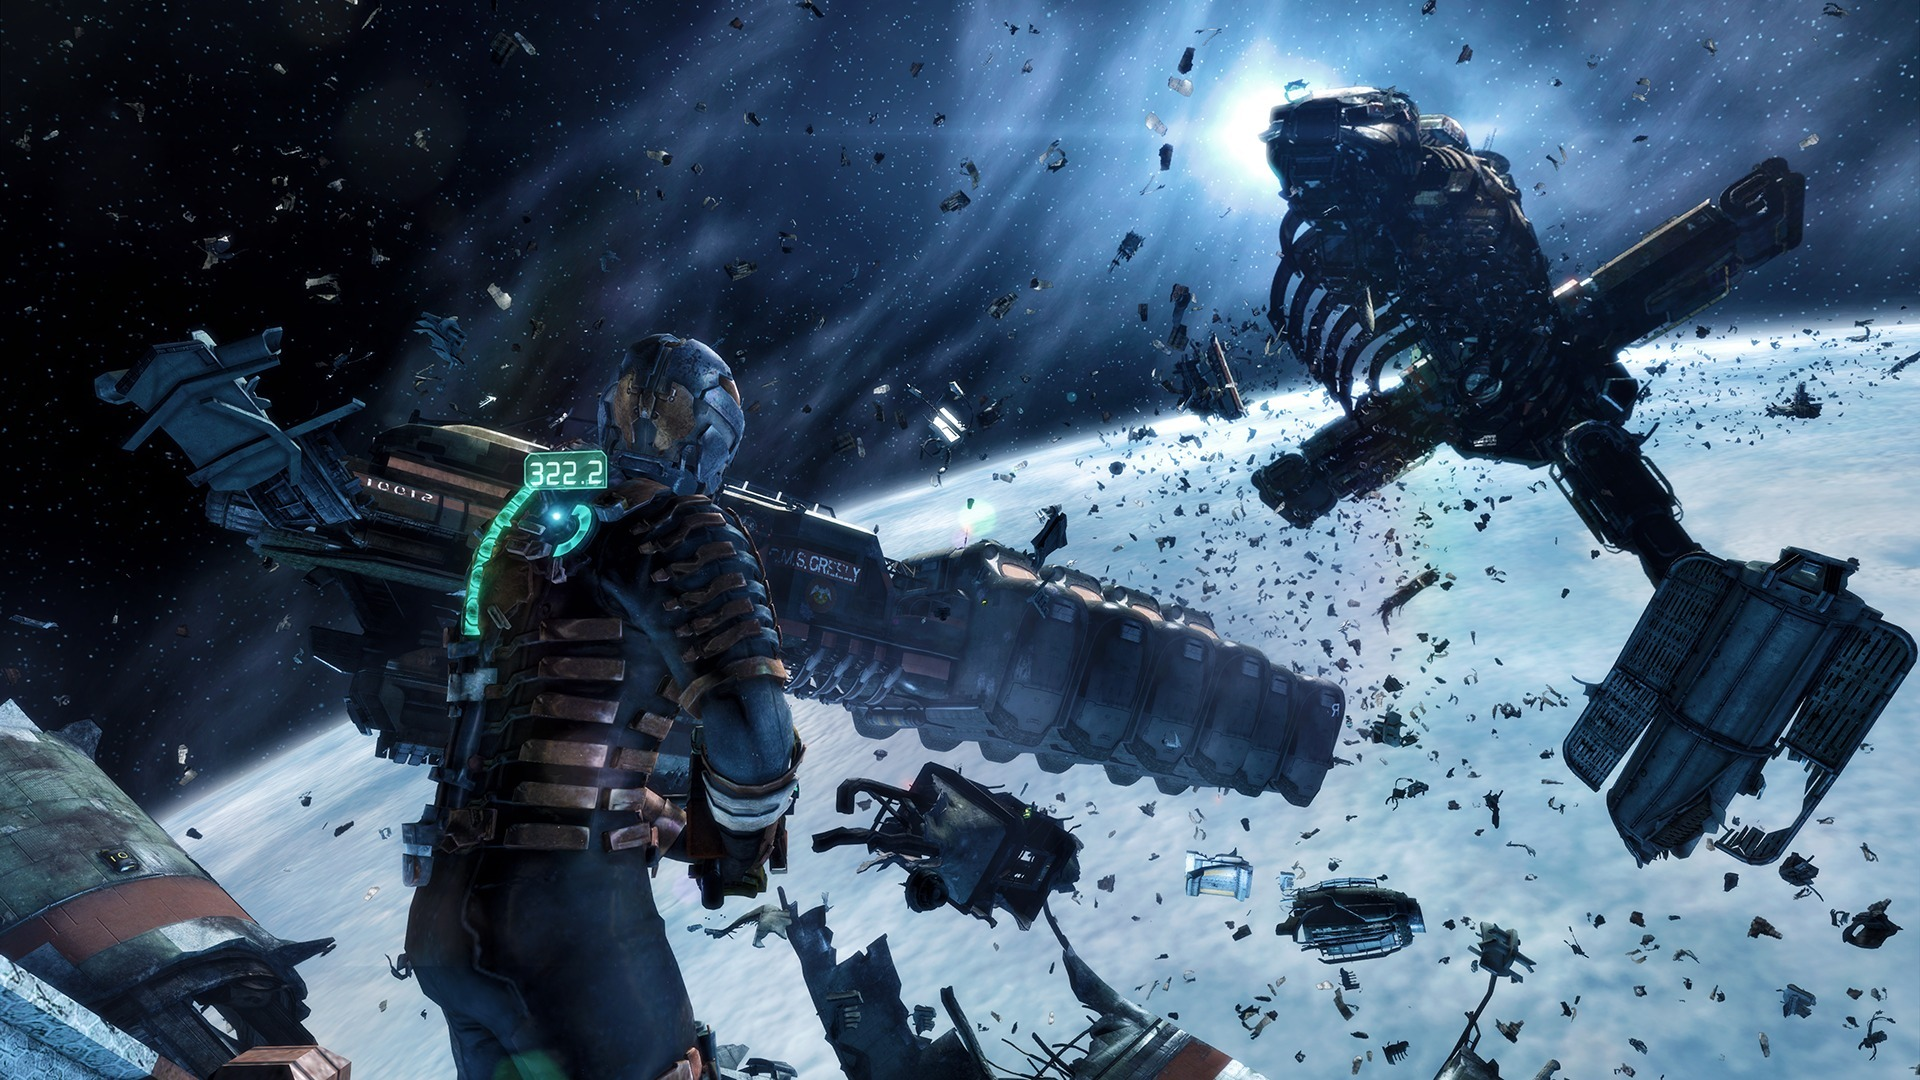 Dead Space 3 Warriors Disasters Armor sci fi wallpaper 1920x1080 1920x1080